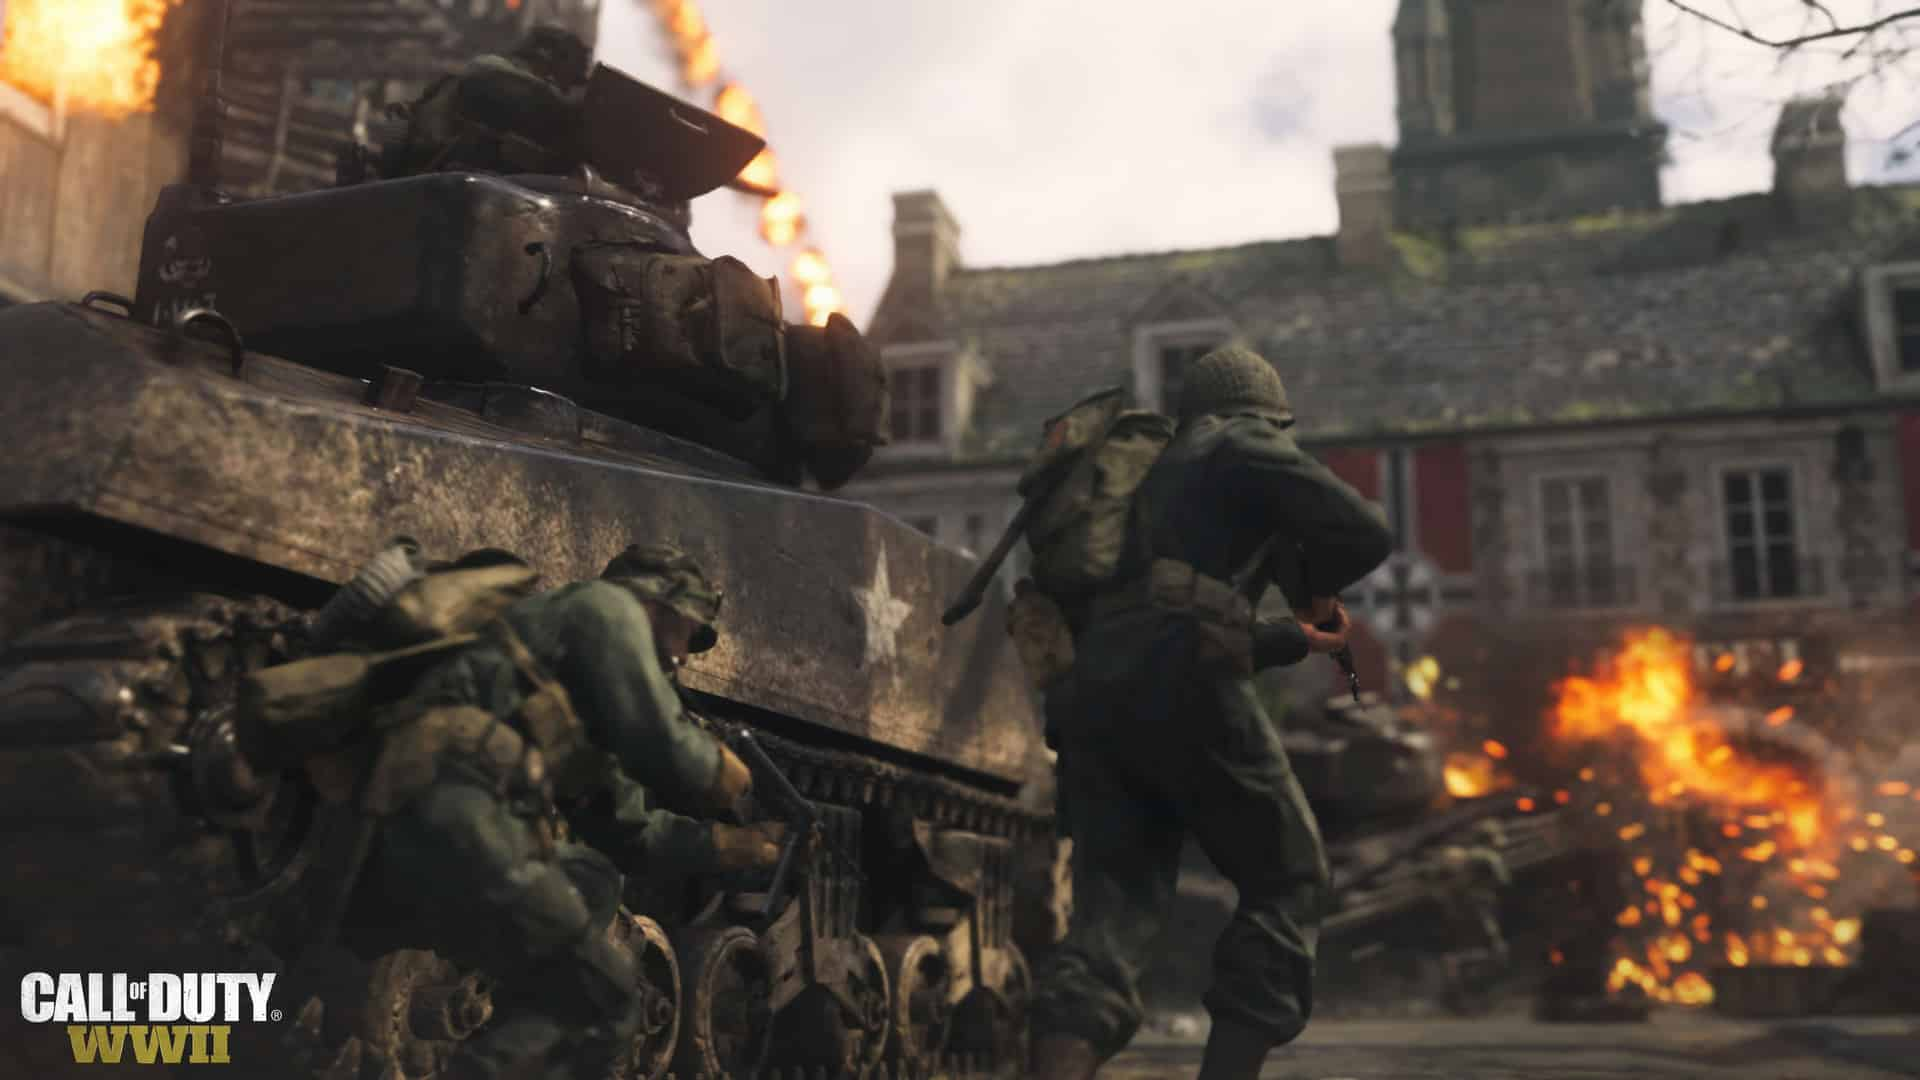 Activision reveals that Call of Duty: WWII has doubled Infinite Warfare sales